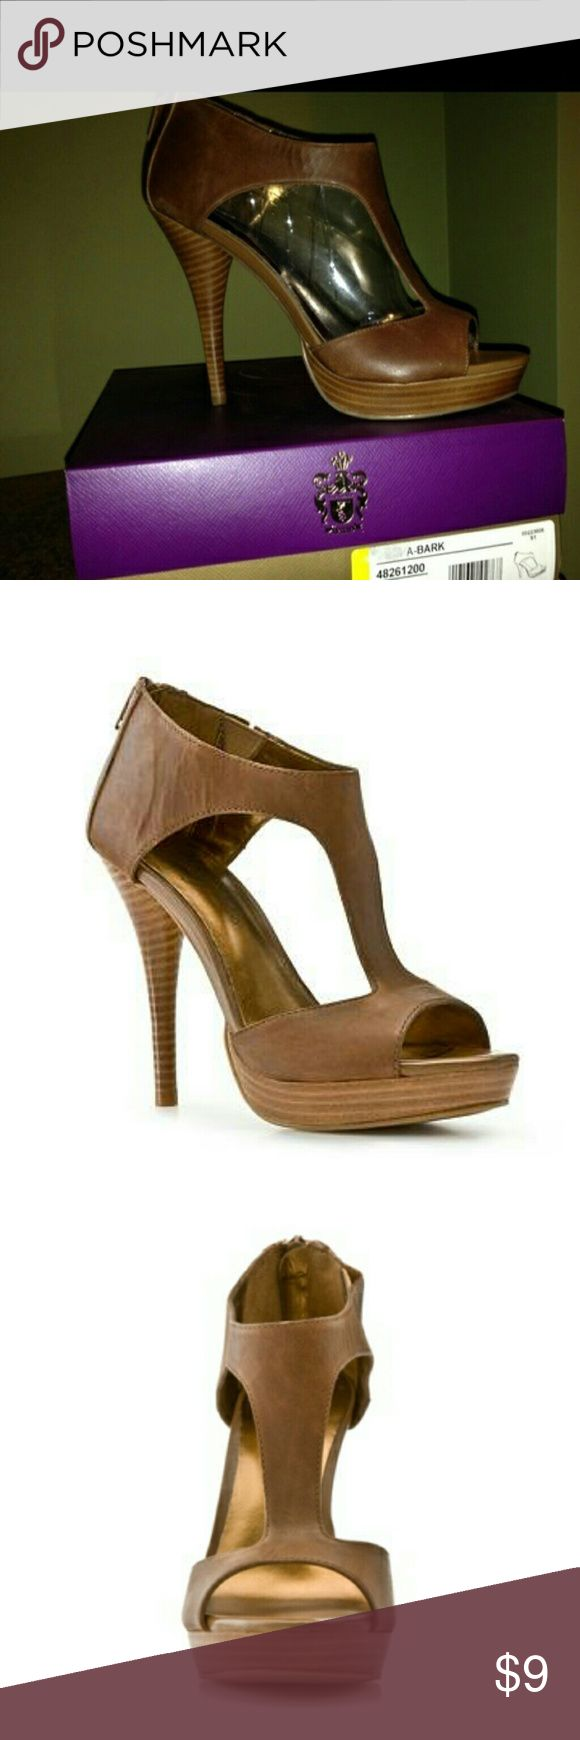 Fergie Kitana Sandals - Size: 7 In excellent condition.  Leather t-strap upper, Back zipper,  Elastic insert for added stretch 1/4 platform, 4 1/2 stacked heel, Synthetic sole Fergie Shoes